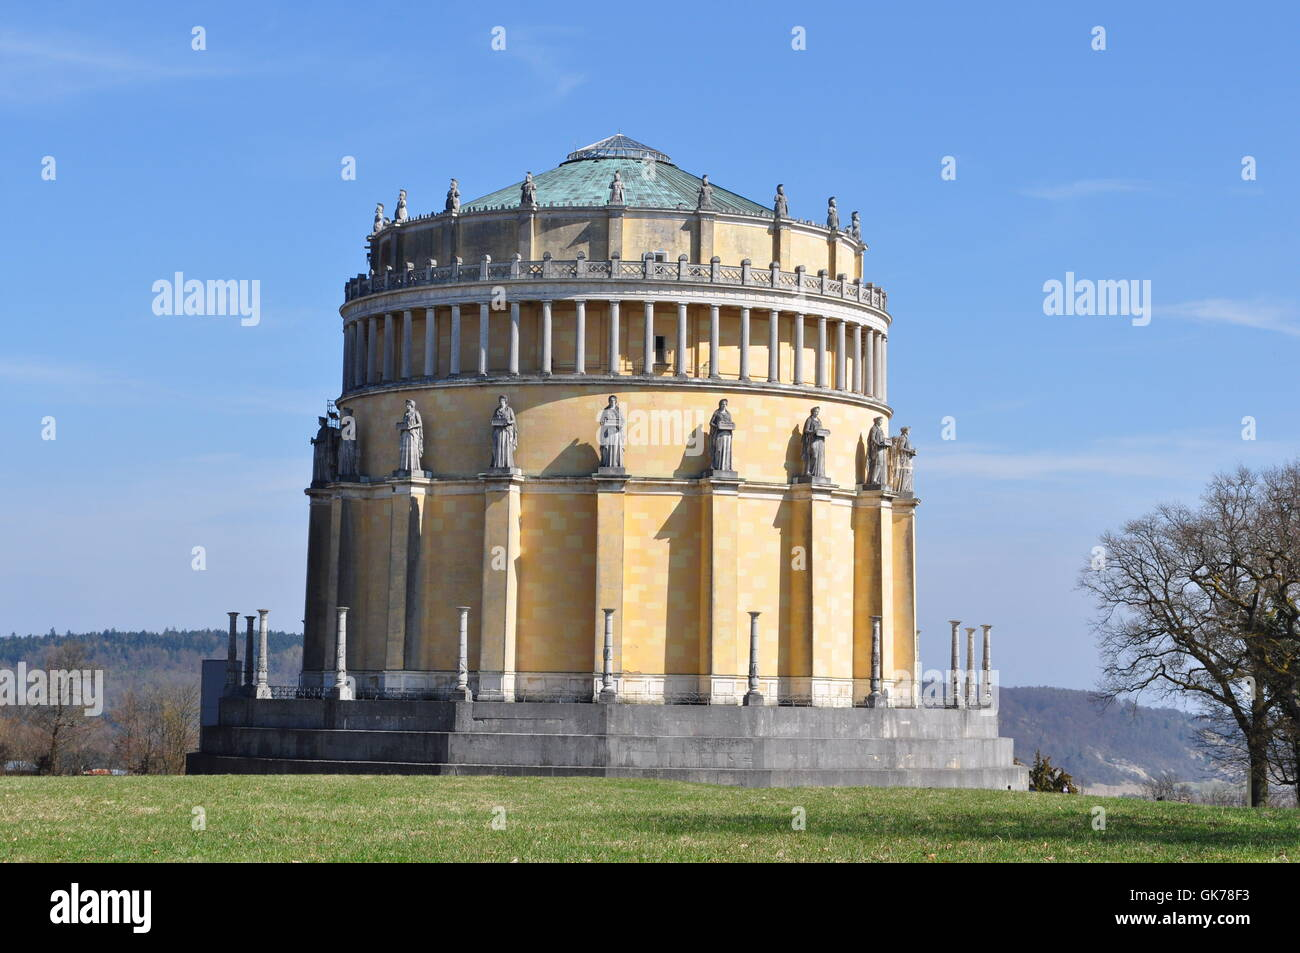 bavaria style of construction architecture Stock Photo